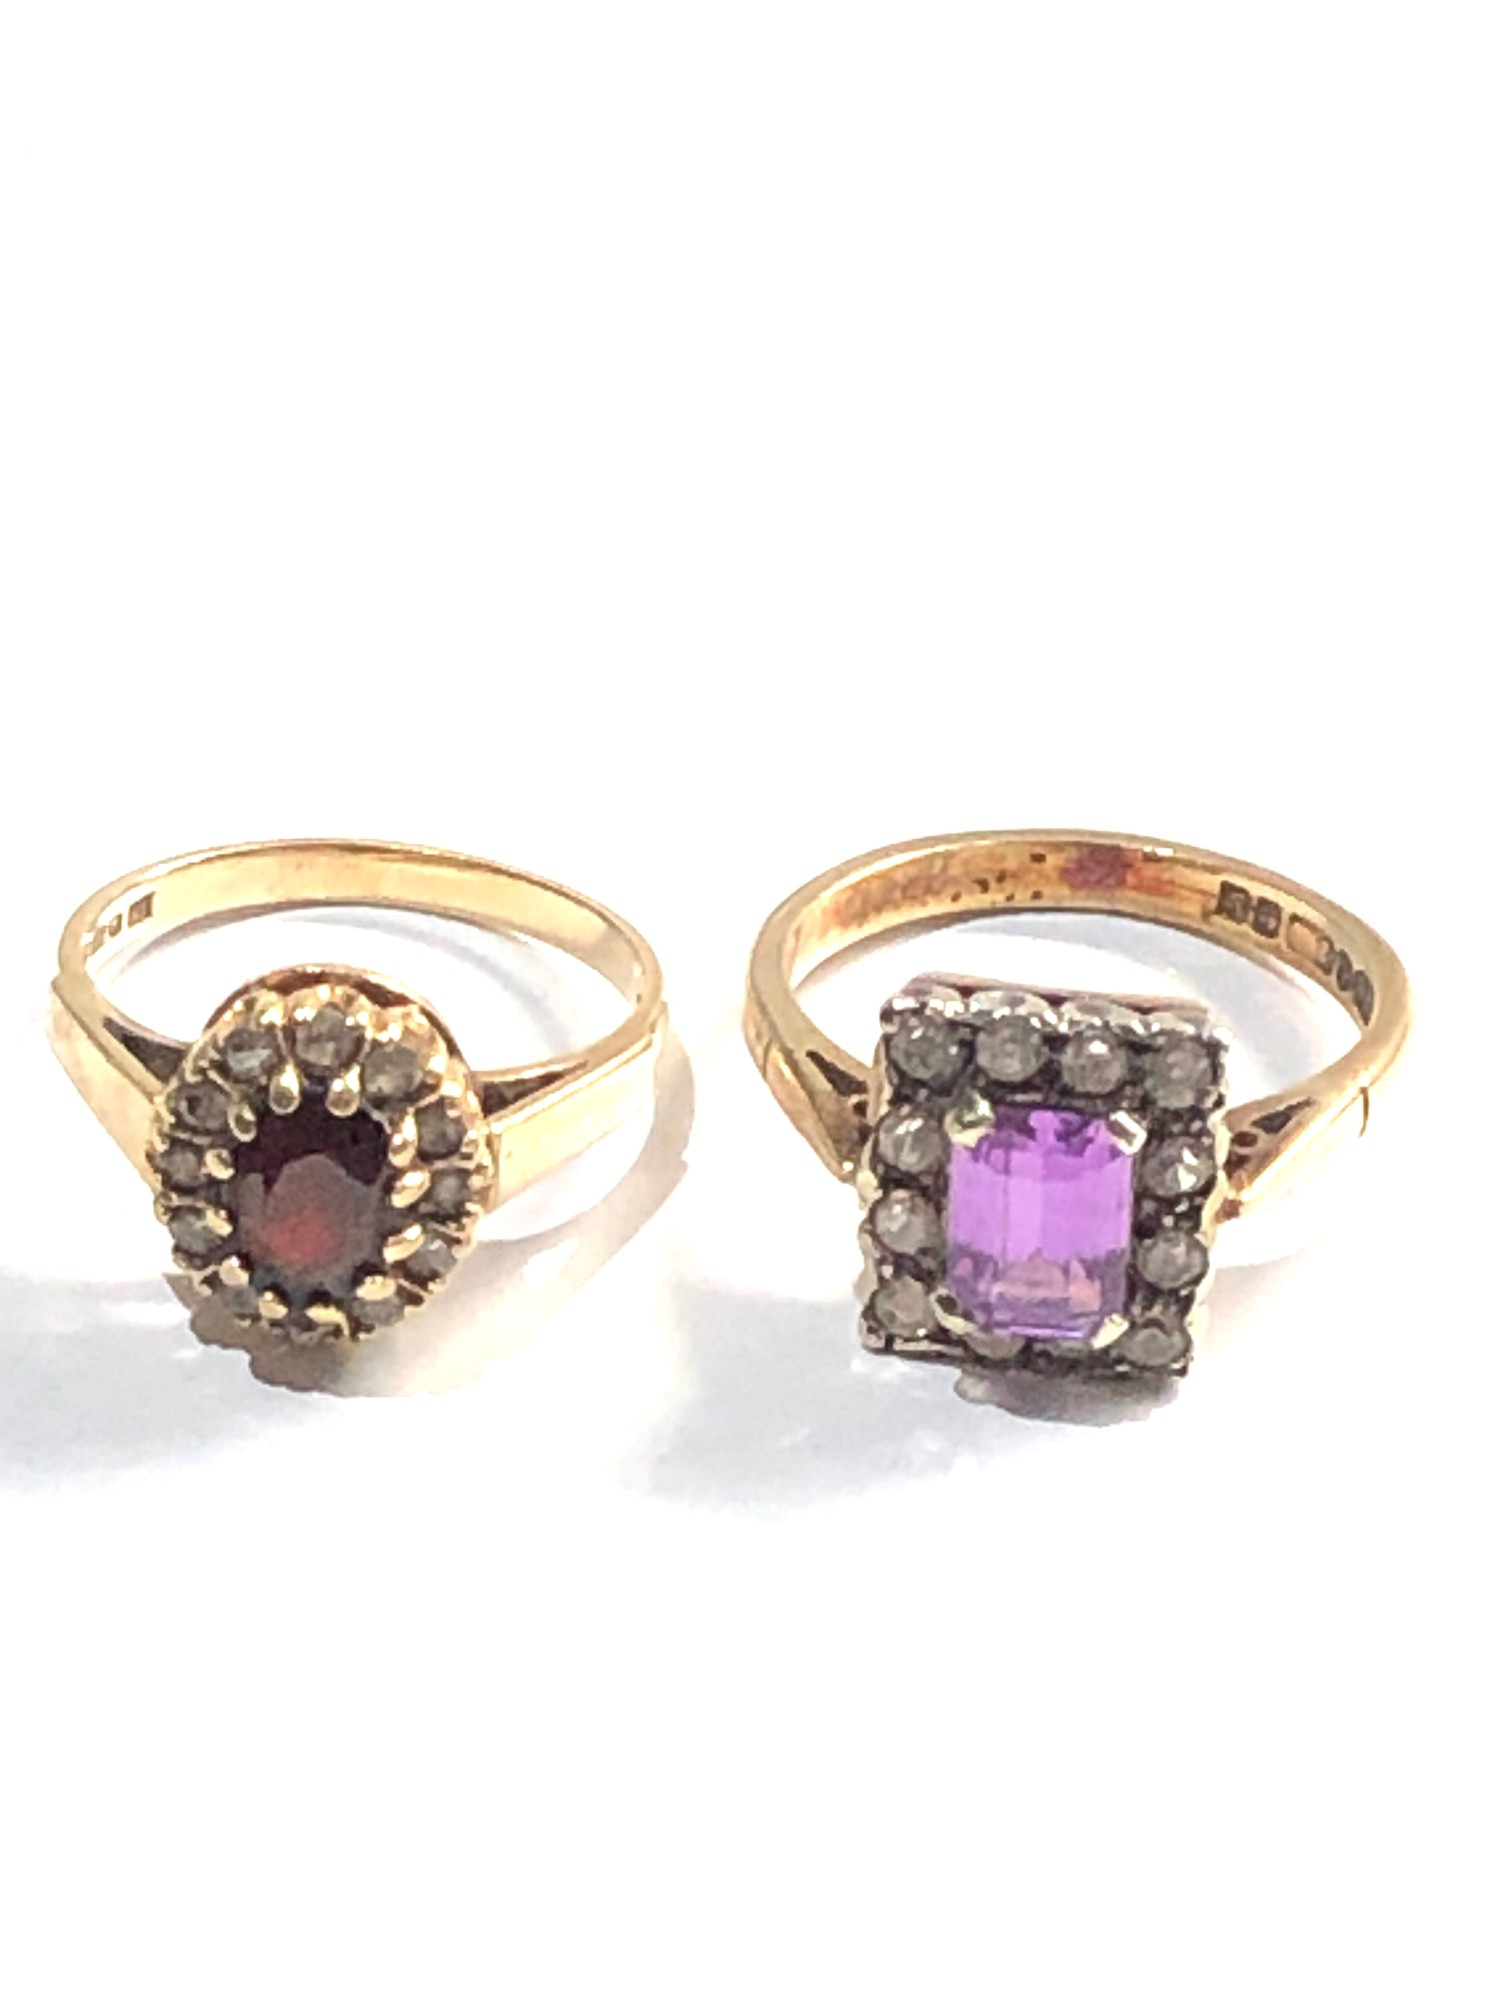 2 x 9ct gold cluster rings 6.2g